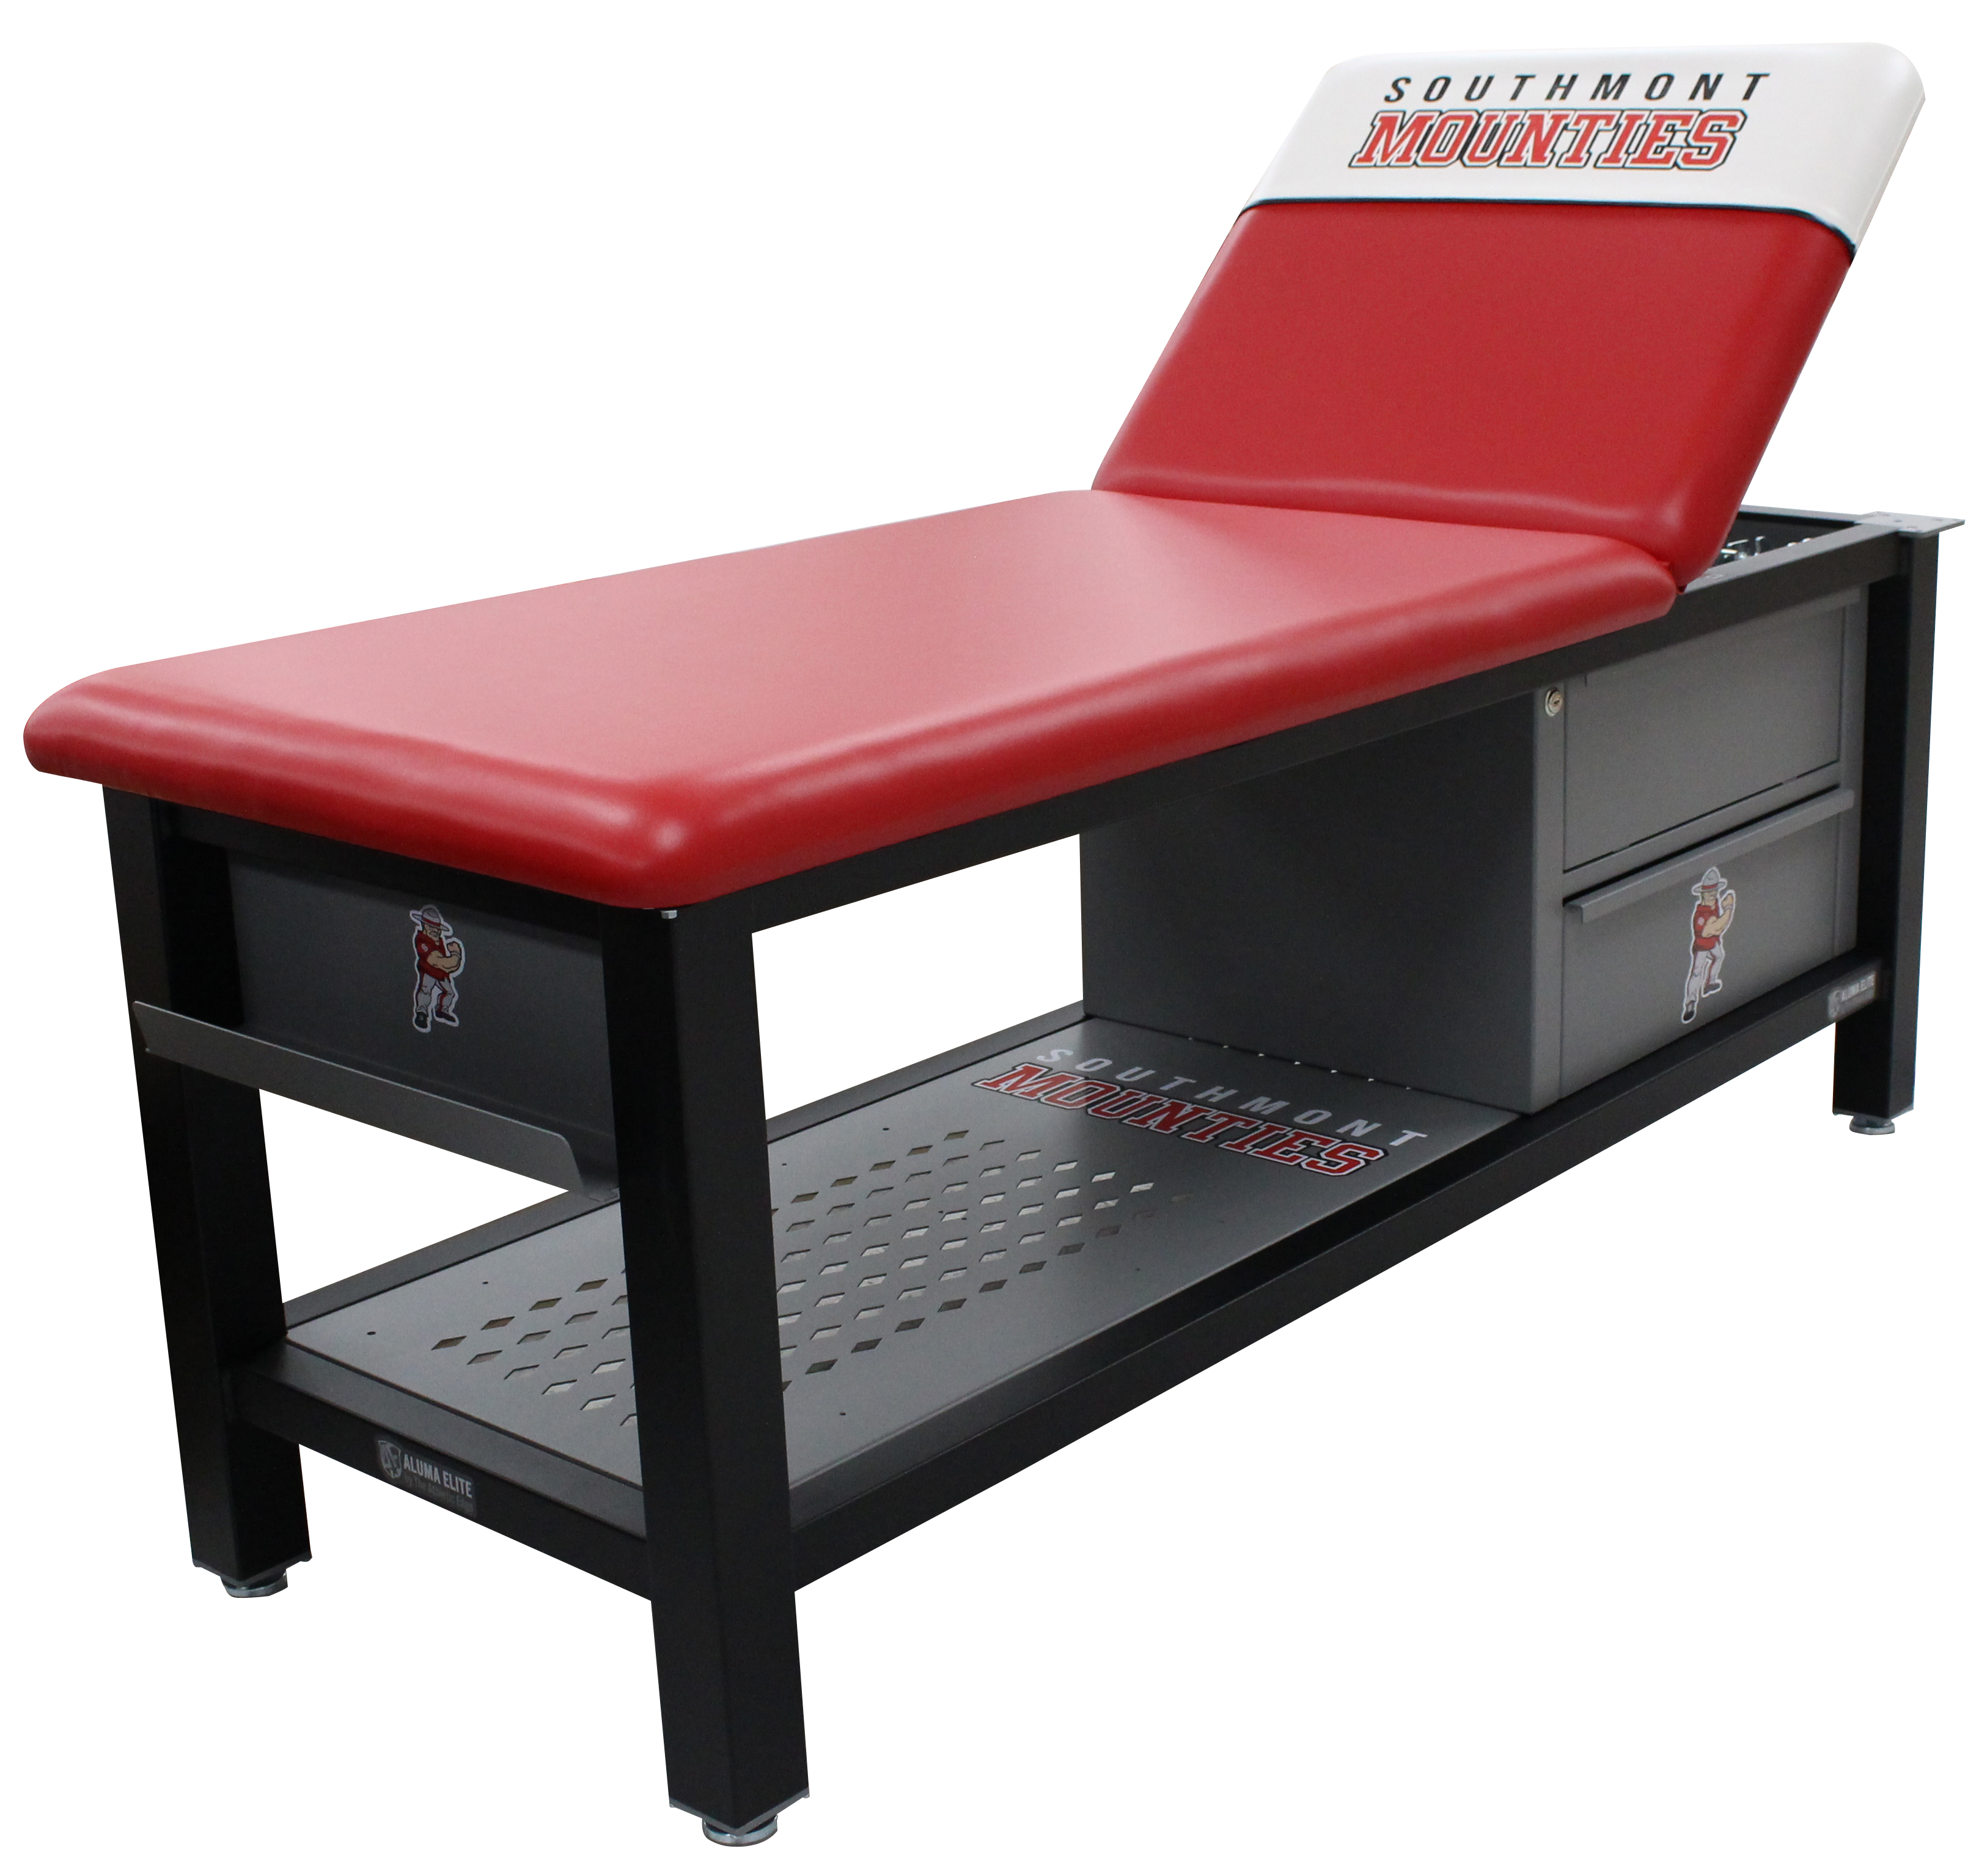 Southmount HS-(Aluma Elite Treatment Table)